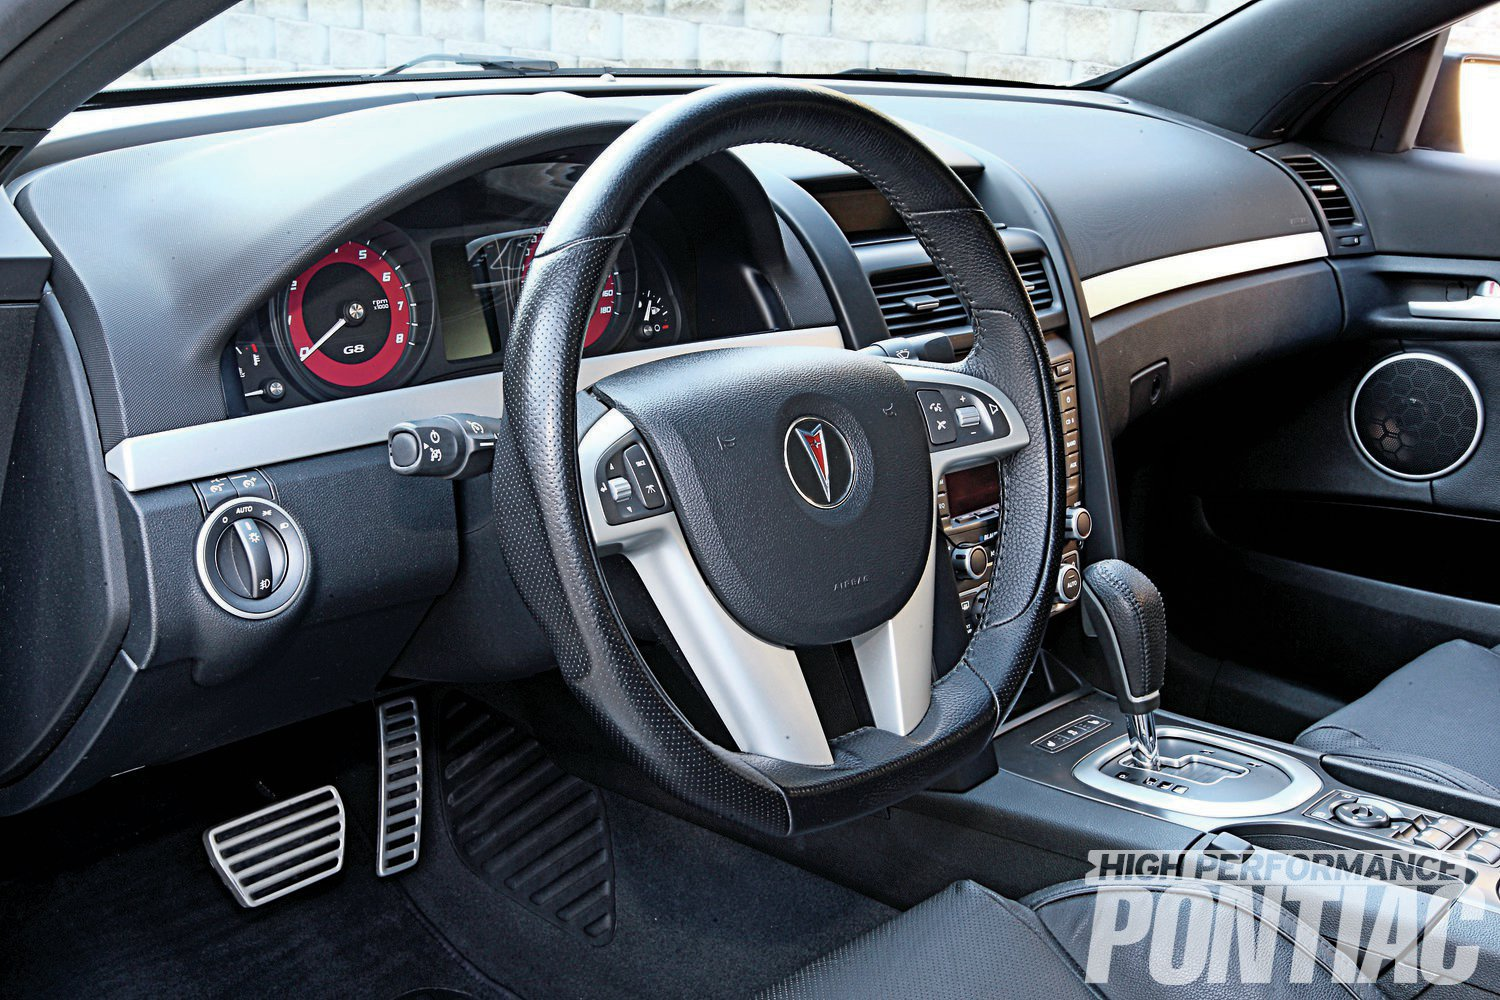 The Onyx leather interior remains completely stock, save for modern Polk Audio speakers.